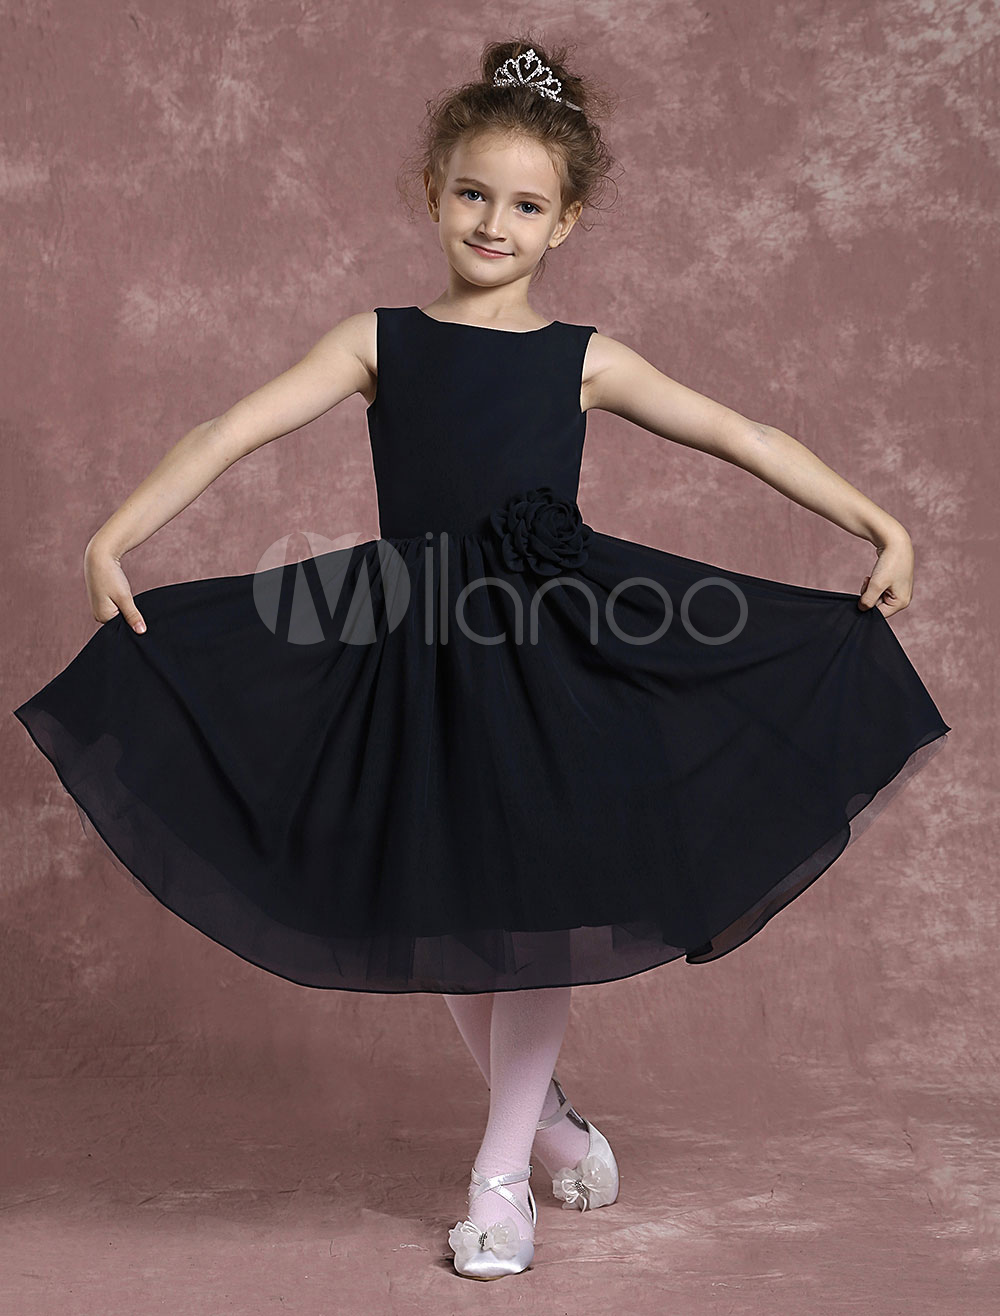 Buy Black Flower Girl Dresses A Line Chiffon Pageant Dresses Toddler's Zipper Knee Length Fomal Dresses With Flower for $64.79 in Milanoo store